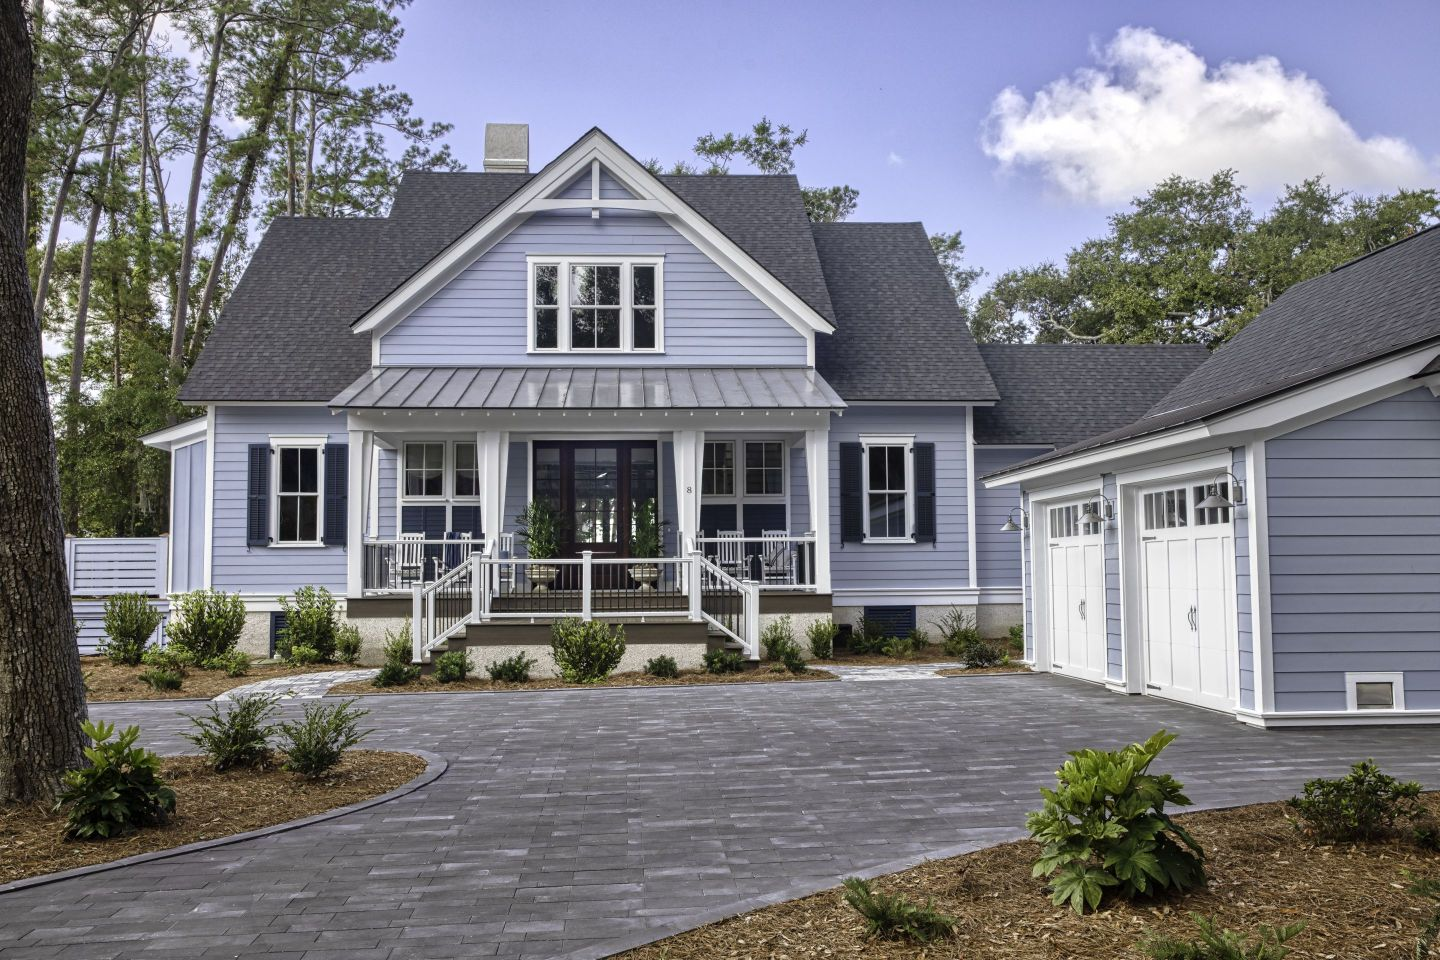 HGTV-Dream-Home-2020-Front-Yard-1440x960 Lowcountry Vacation Home Style in Hilton Head with HGTV Dream Home 2020